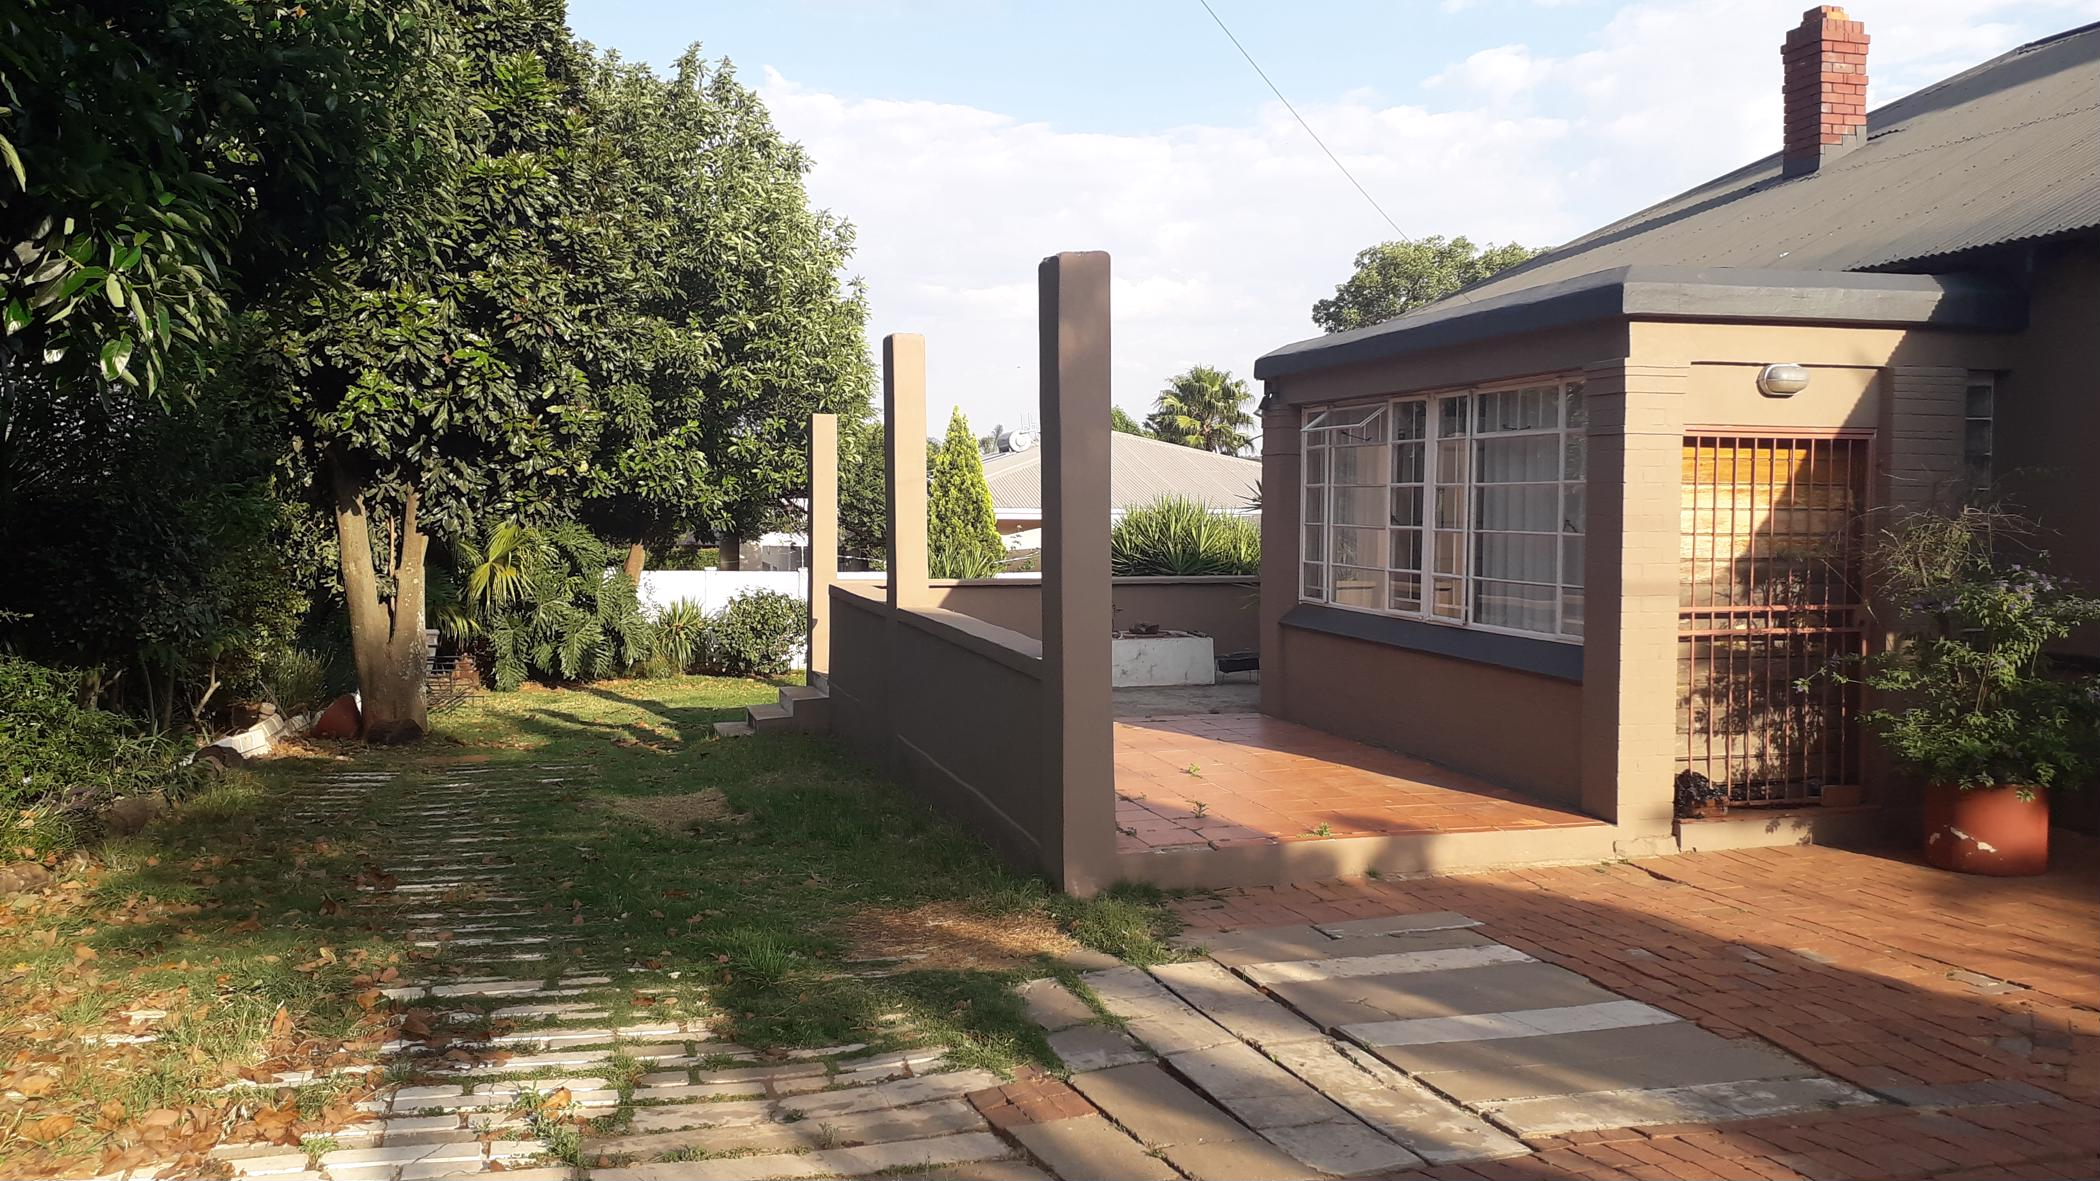 https://listing.pamgolding.co.za/images/properties/201810/1095001/H/1095001_H_3.jpg